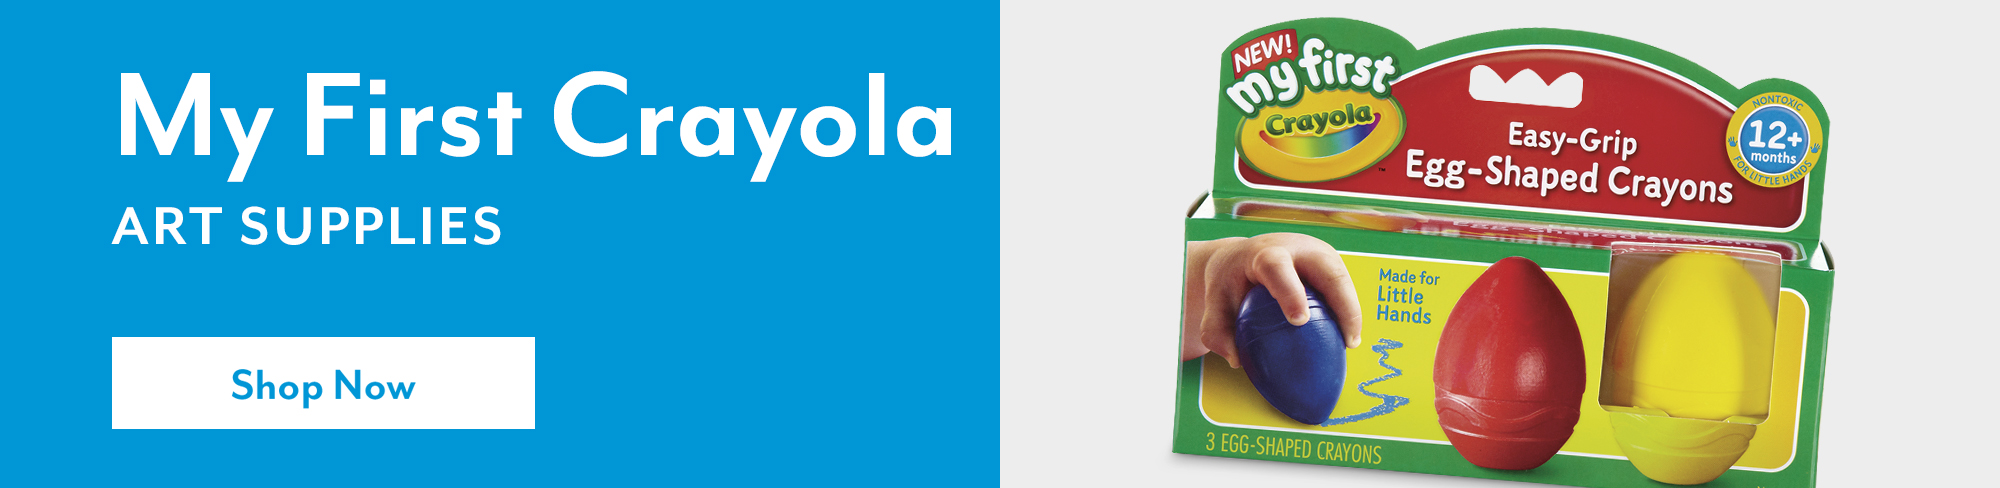 My First Crayola® art supplies - Shop Now